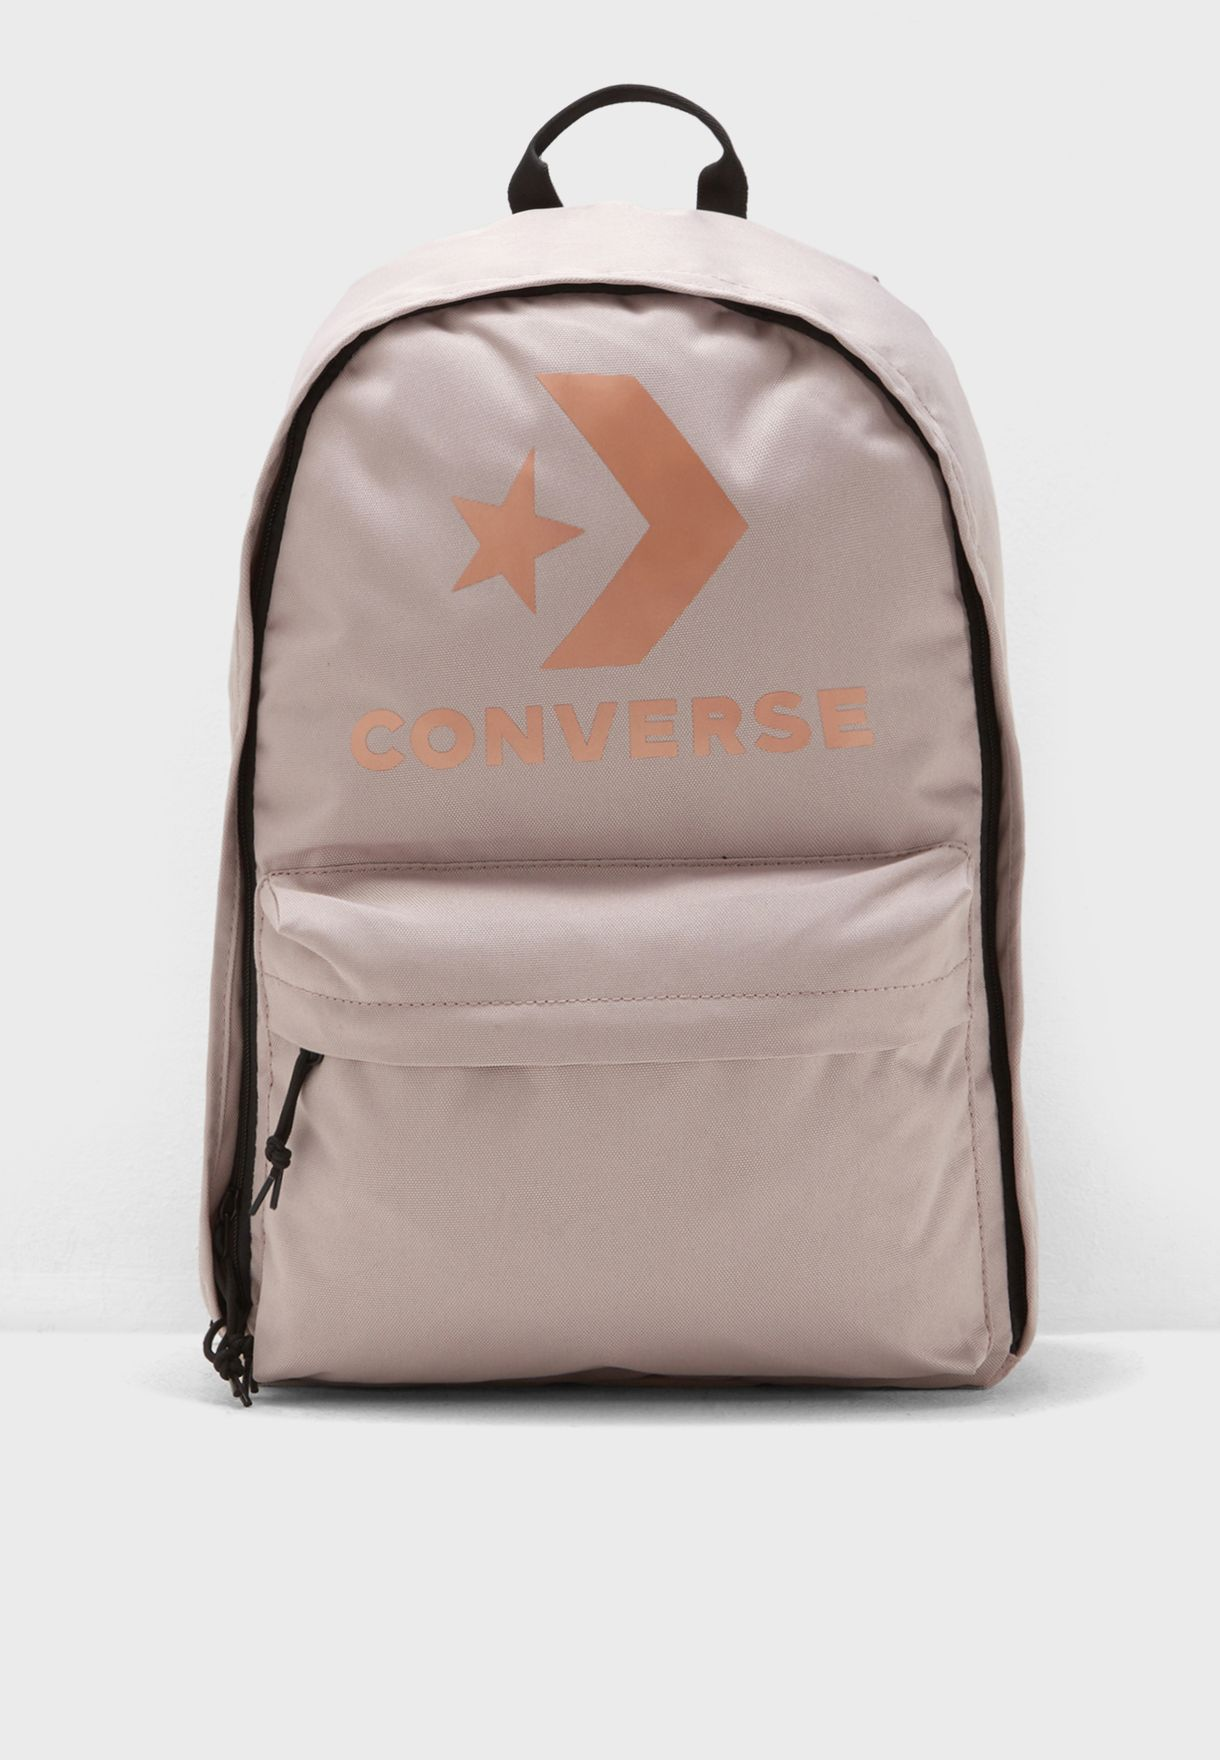 1909a07d3989 Shop Converse pink EDC 22 Backpack 10007683-A02 for Women in ...